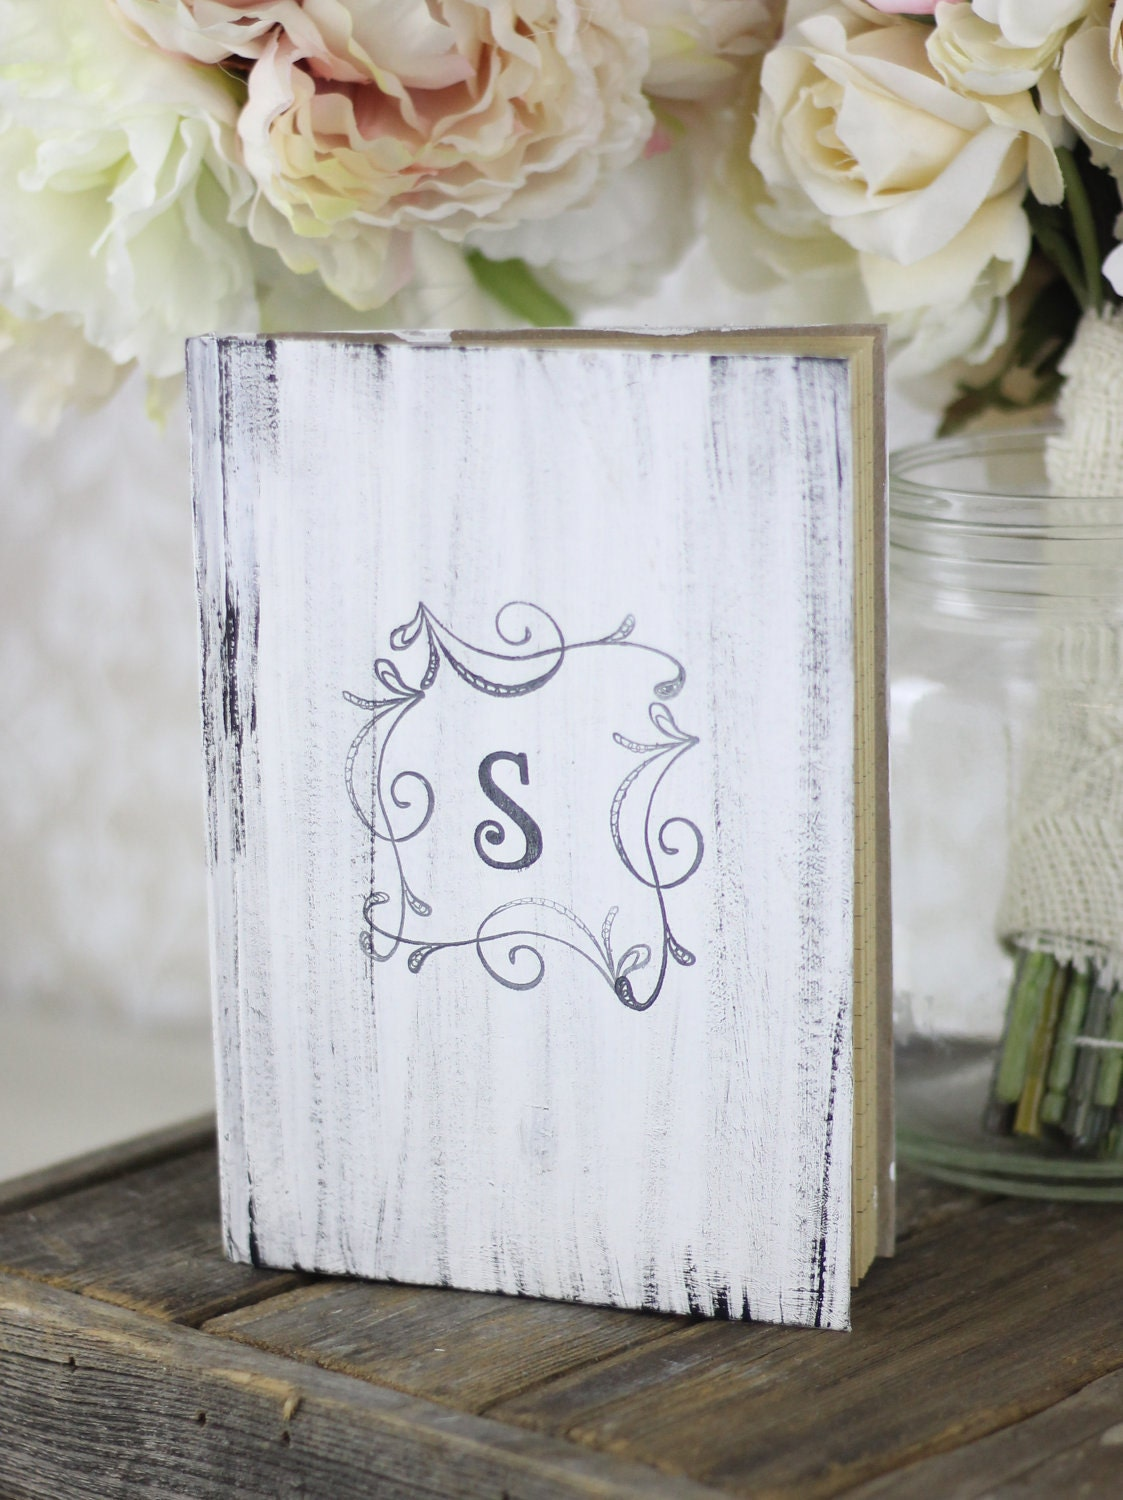 Wedding guest book shabby chic decor rustic item by - Shabby chic decor for sale ...